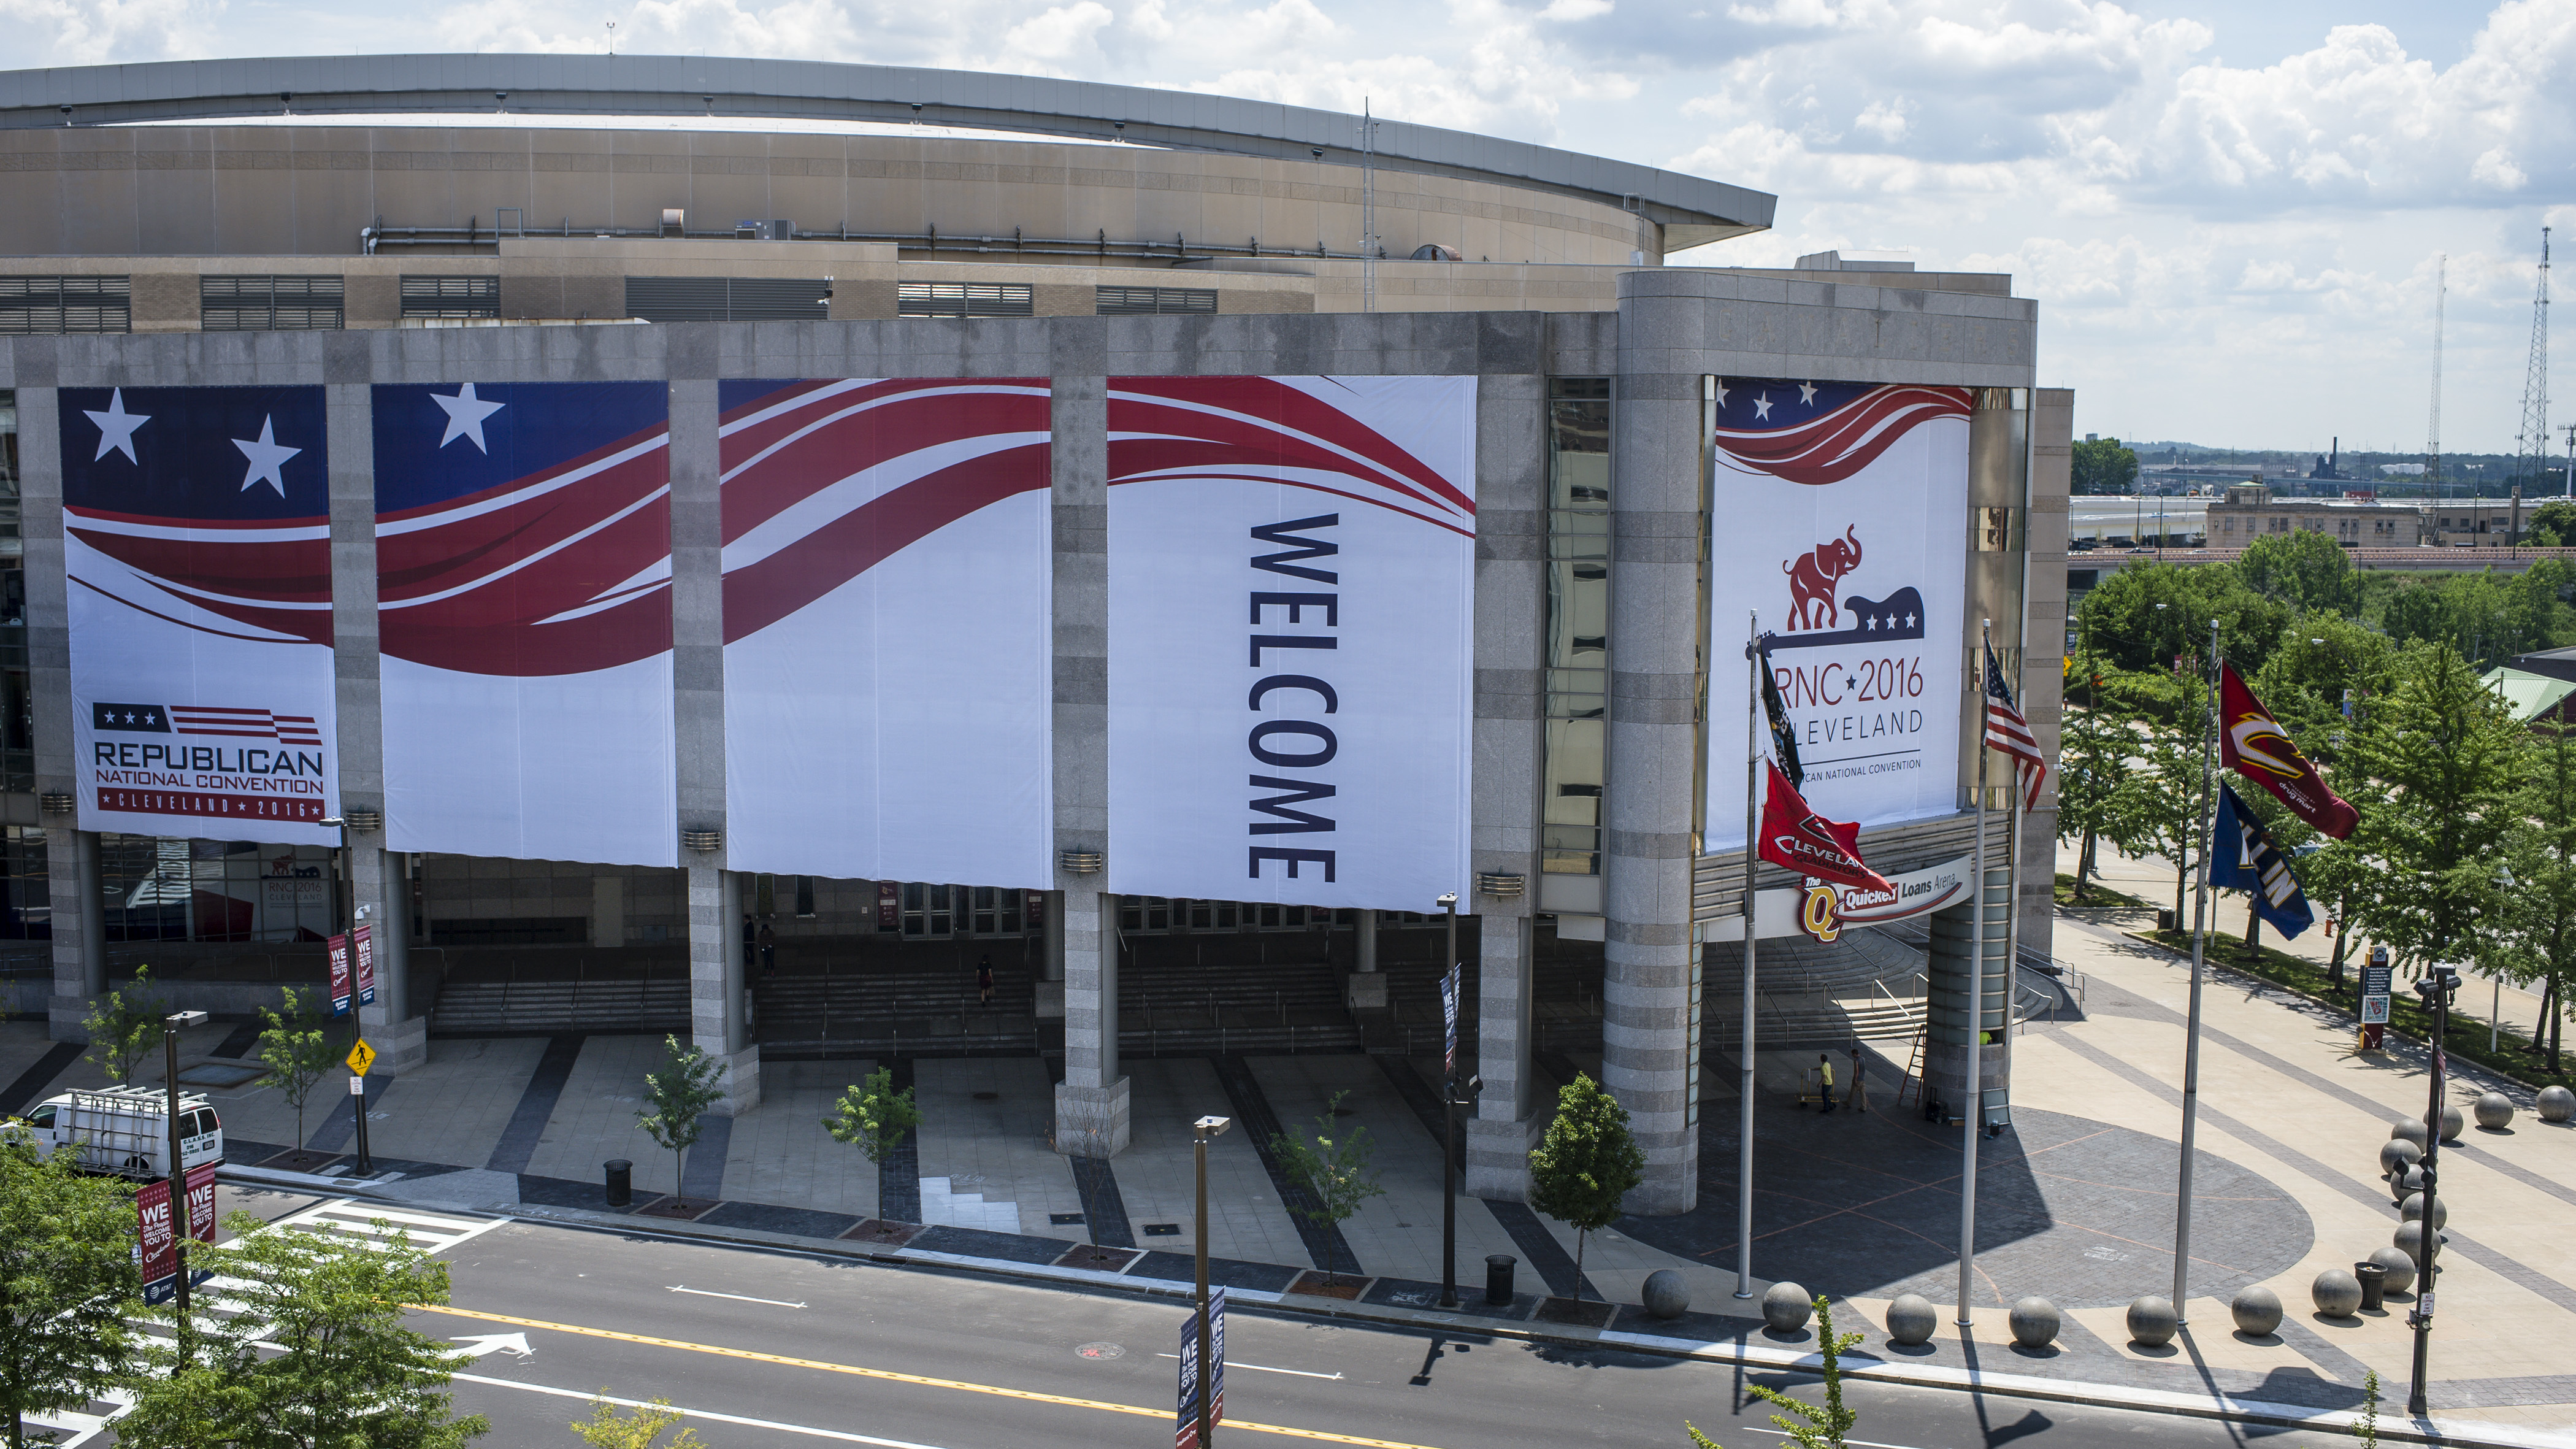 The platform will be voted on Monday at the start of the Republican National Convention in Cleveland. (Photo by Angelo Merendino/Getty Images)